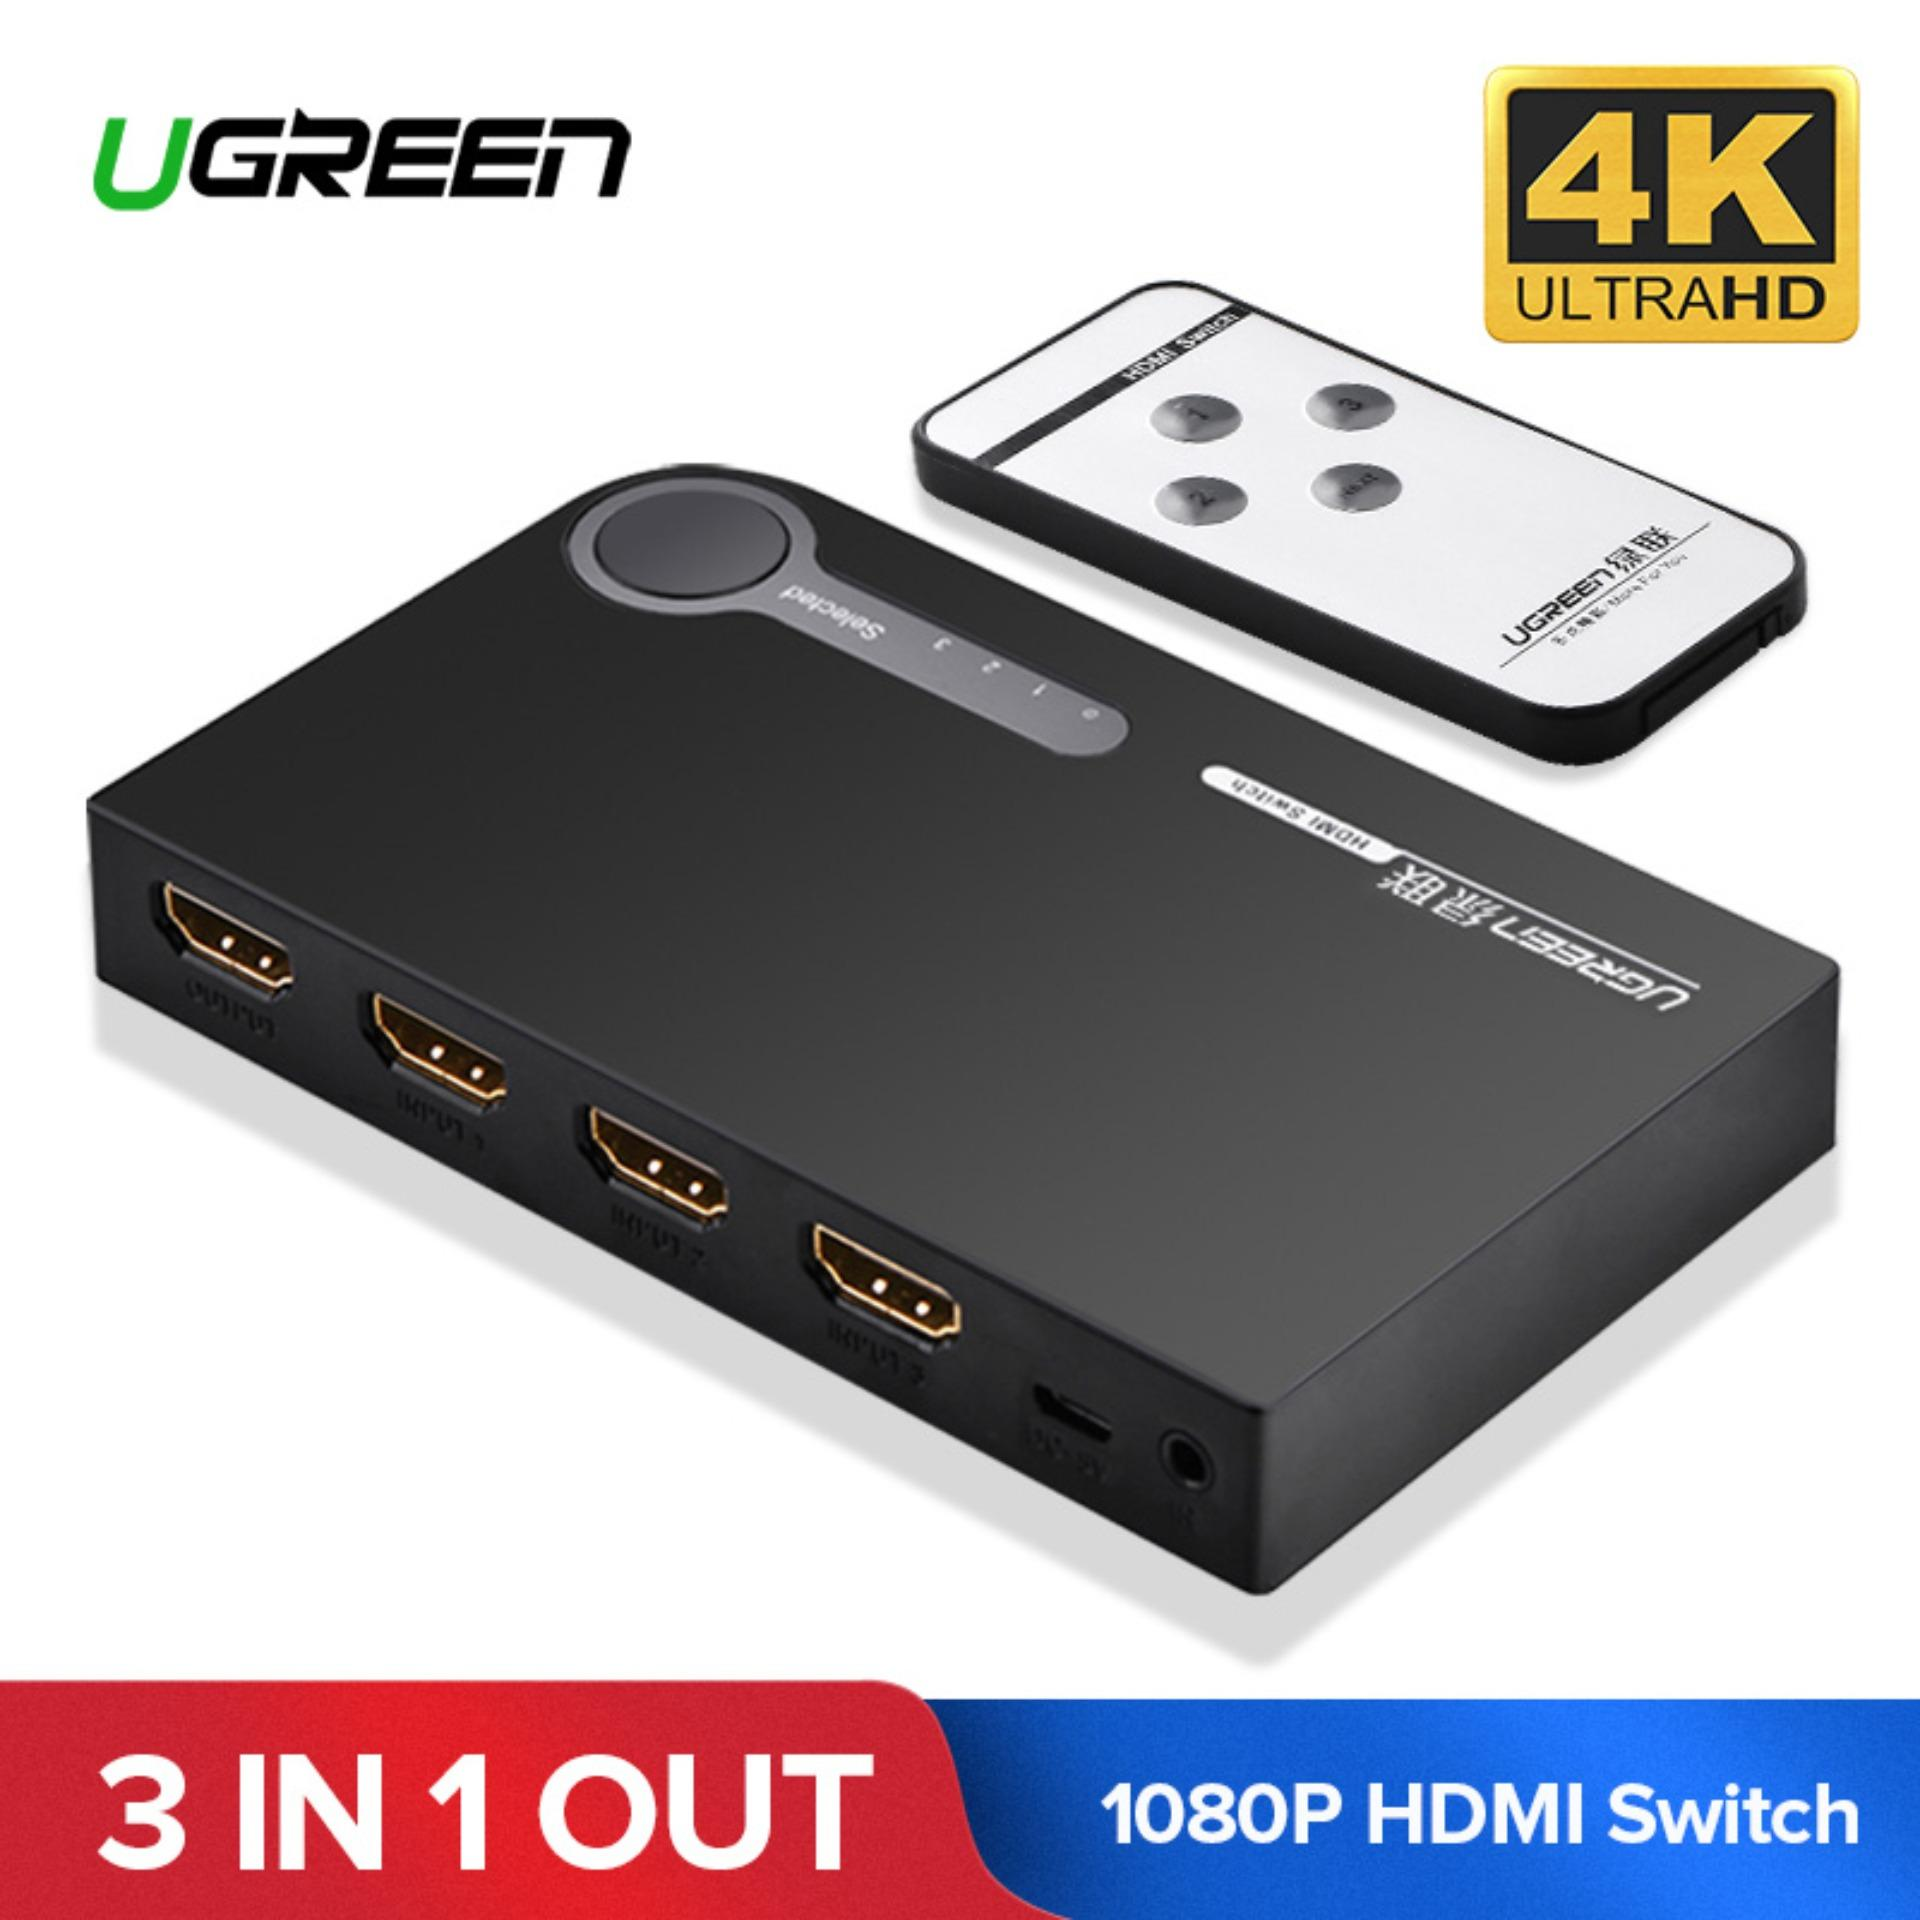 Computer Switches For Sale Pc Prices Brands Specs In Connect Up To Four Wired Pcs And Share Internet Printers Digital Ugreen Hdmi Splitter 3 Port Switch Switcher 1080p Input 1 Output 4k